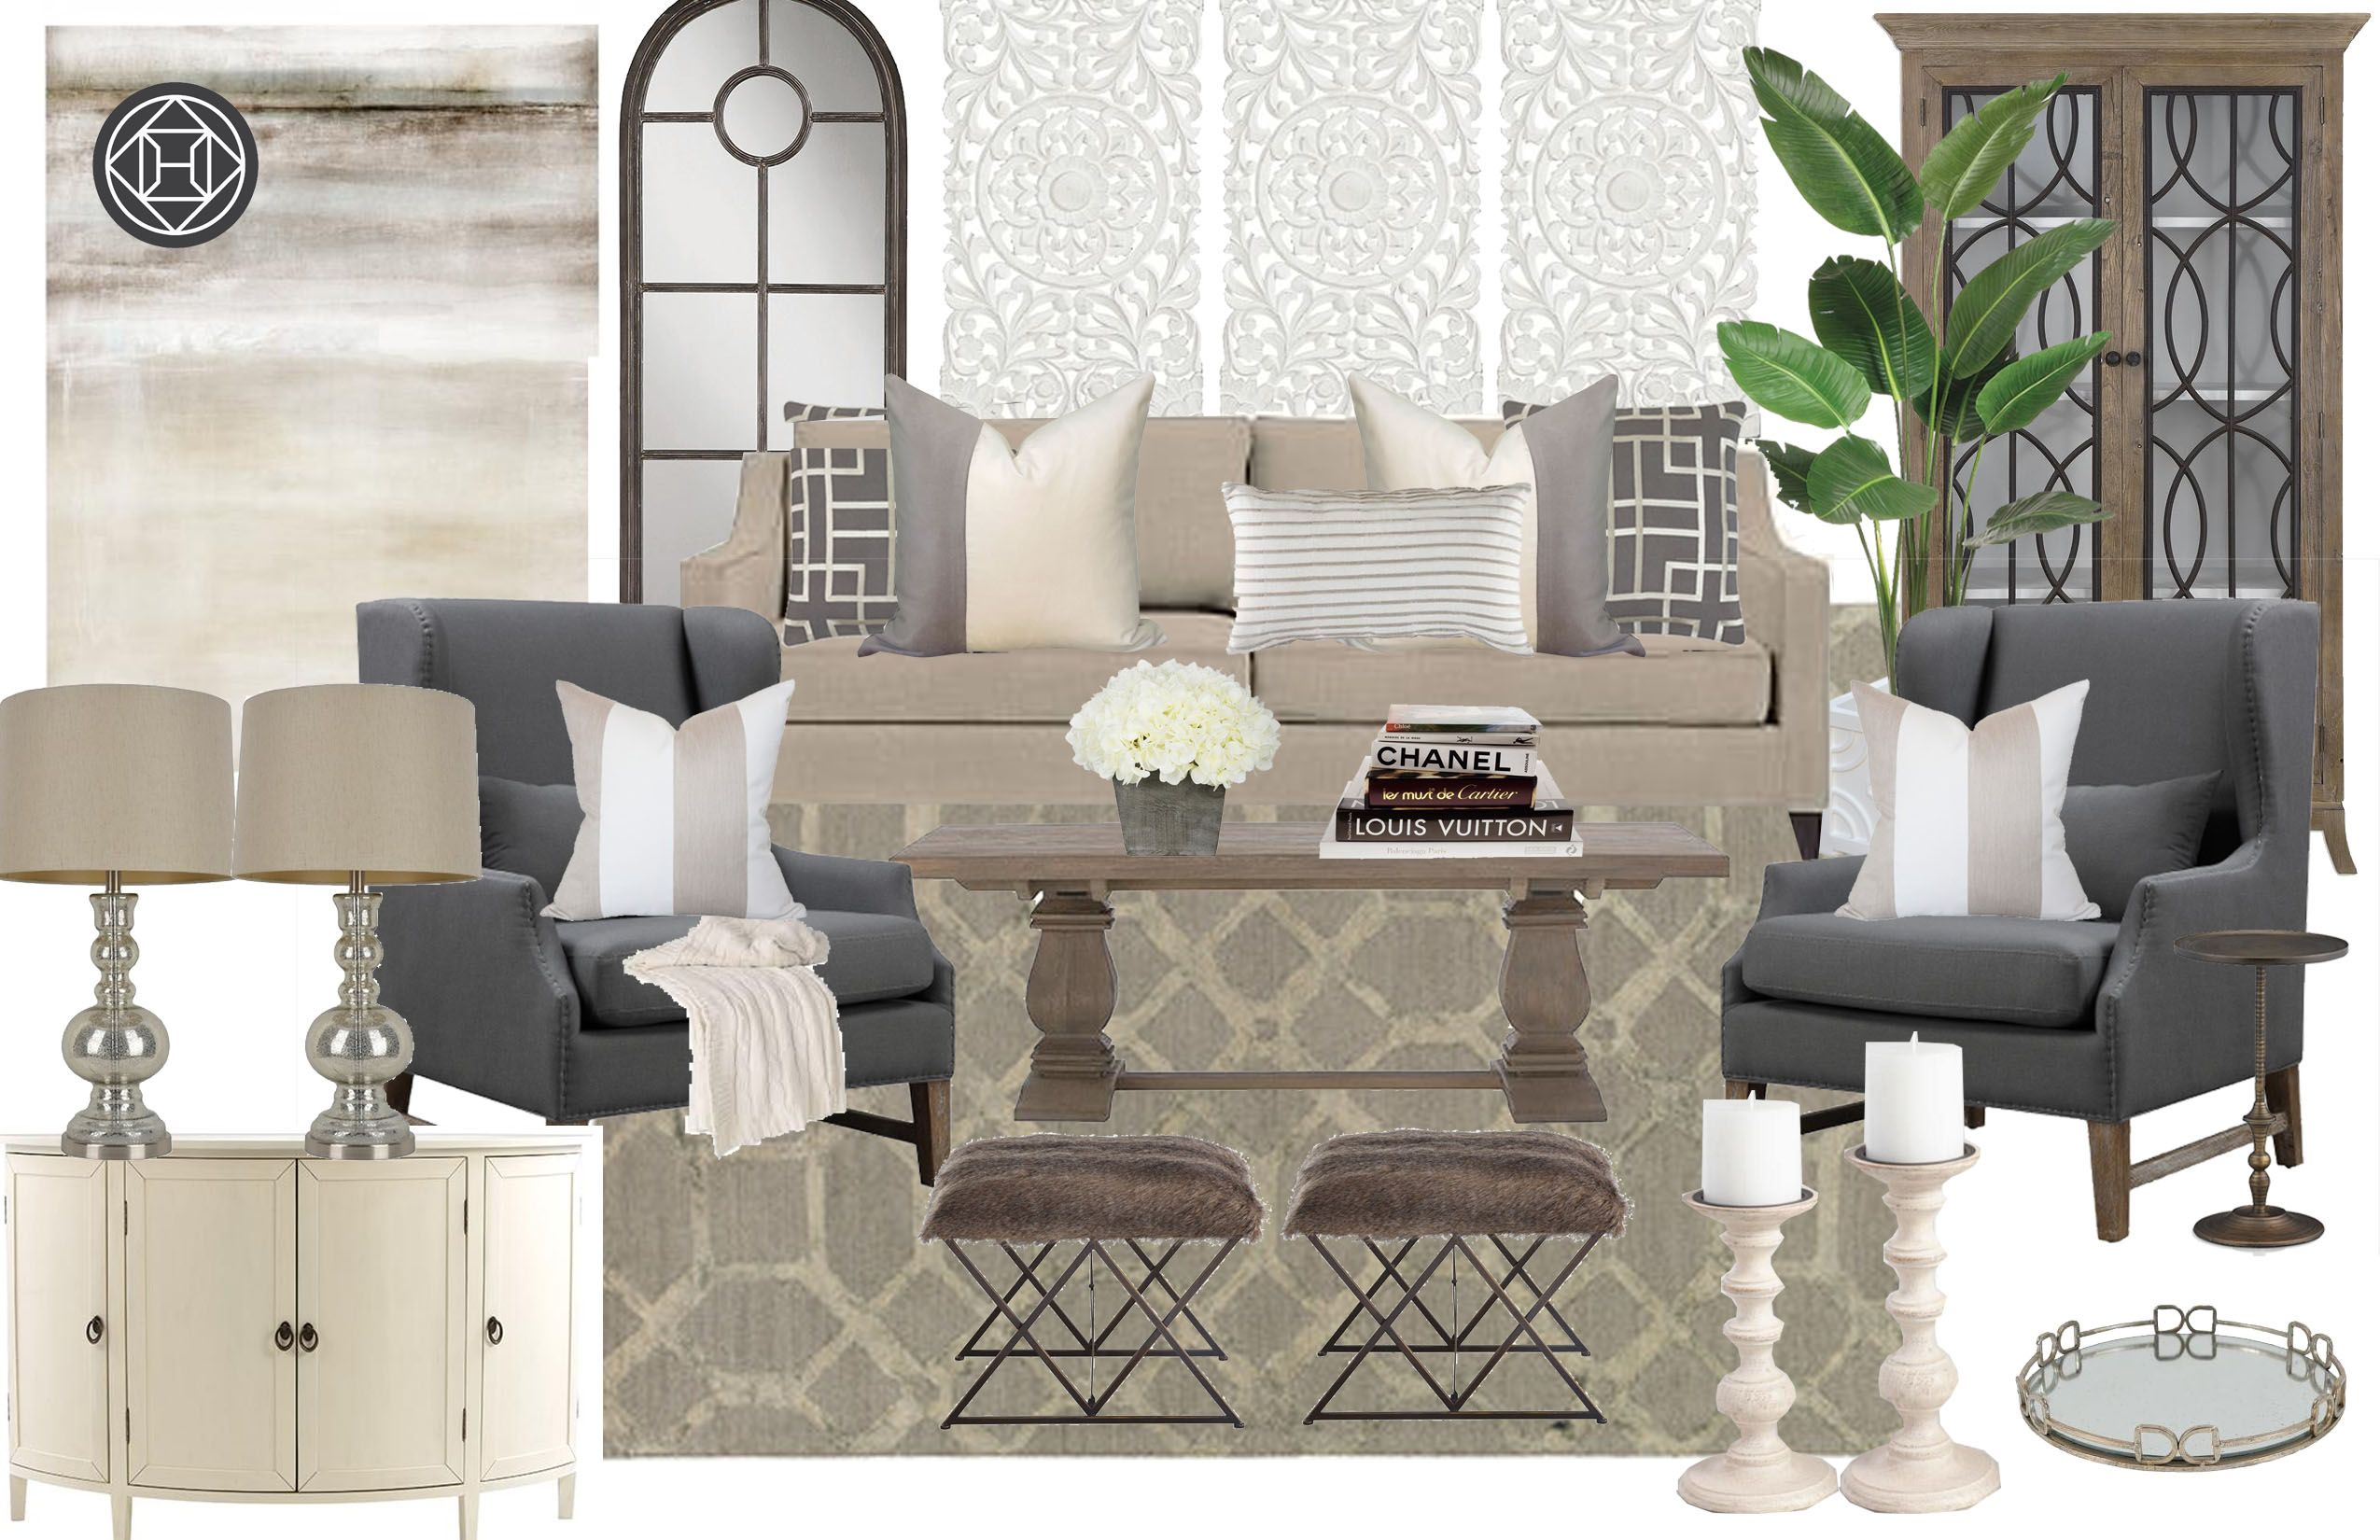 Check out my living room design by Havenly!